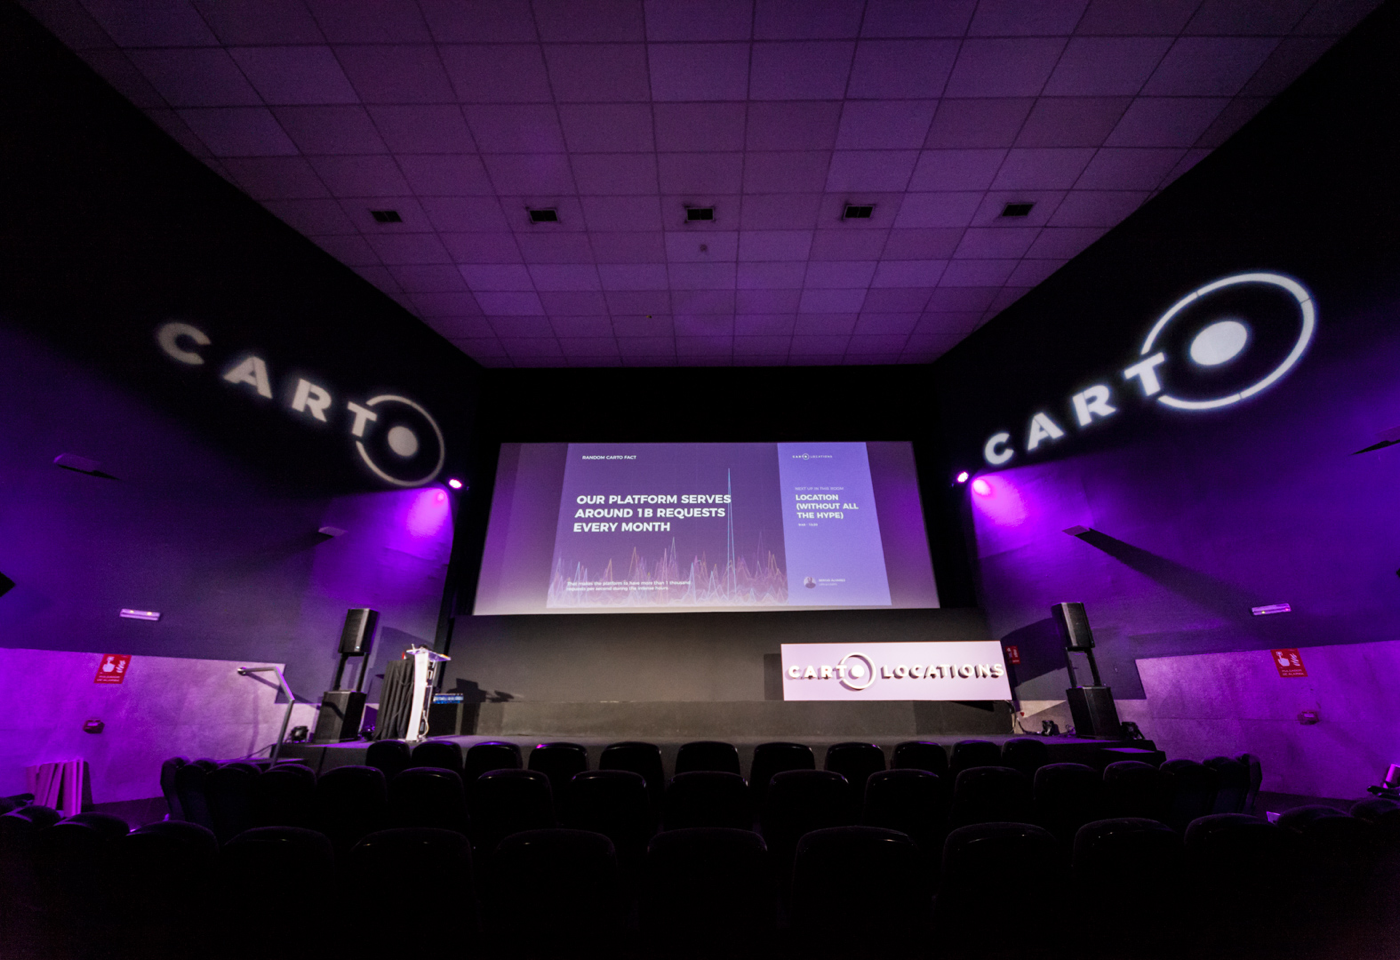 Carto Locations venue, with the logo projected over the walls and purple lights lighting the space